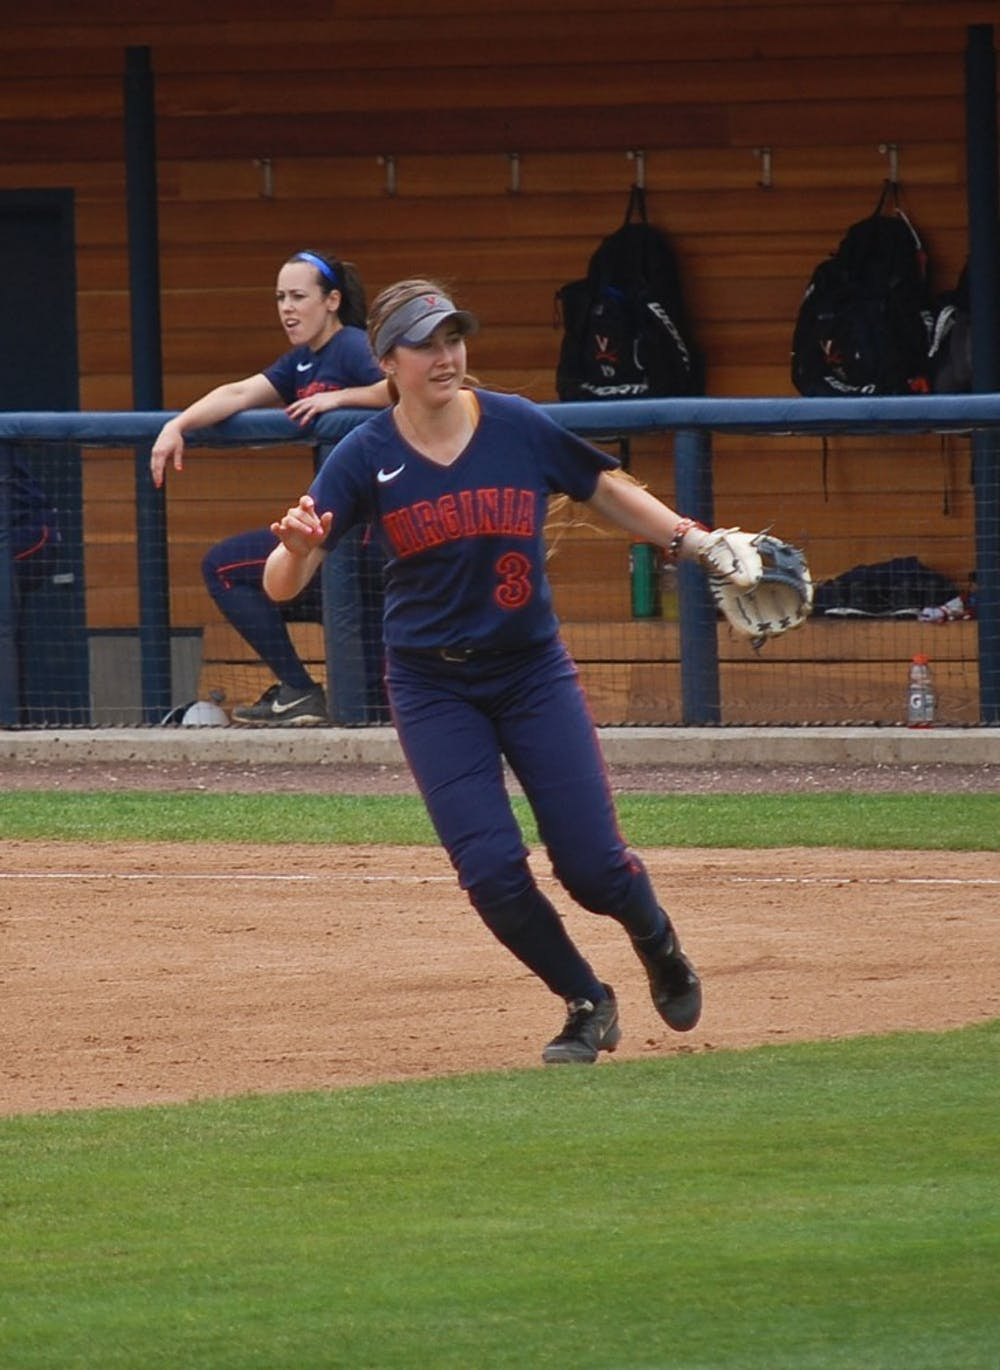 <p>Sophomore second baseman Madison Labshereis keeping a positive attitude despite Virginia's early struggles. She is also crushing the softball, with four home runs and a team-best .611 slugging percentage.</p>